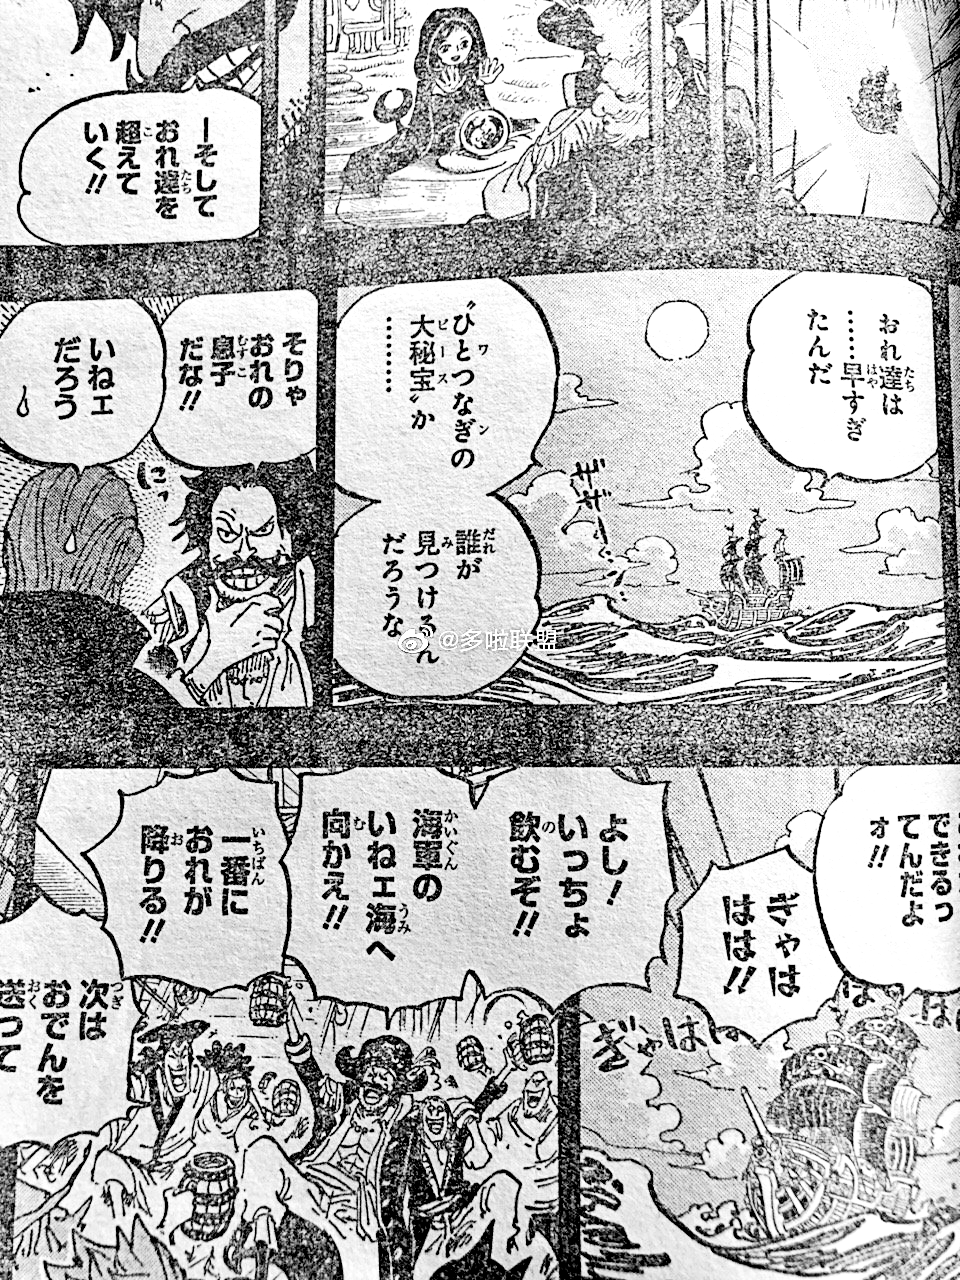 One Piece Chapter 968 raw scans